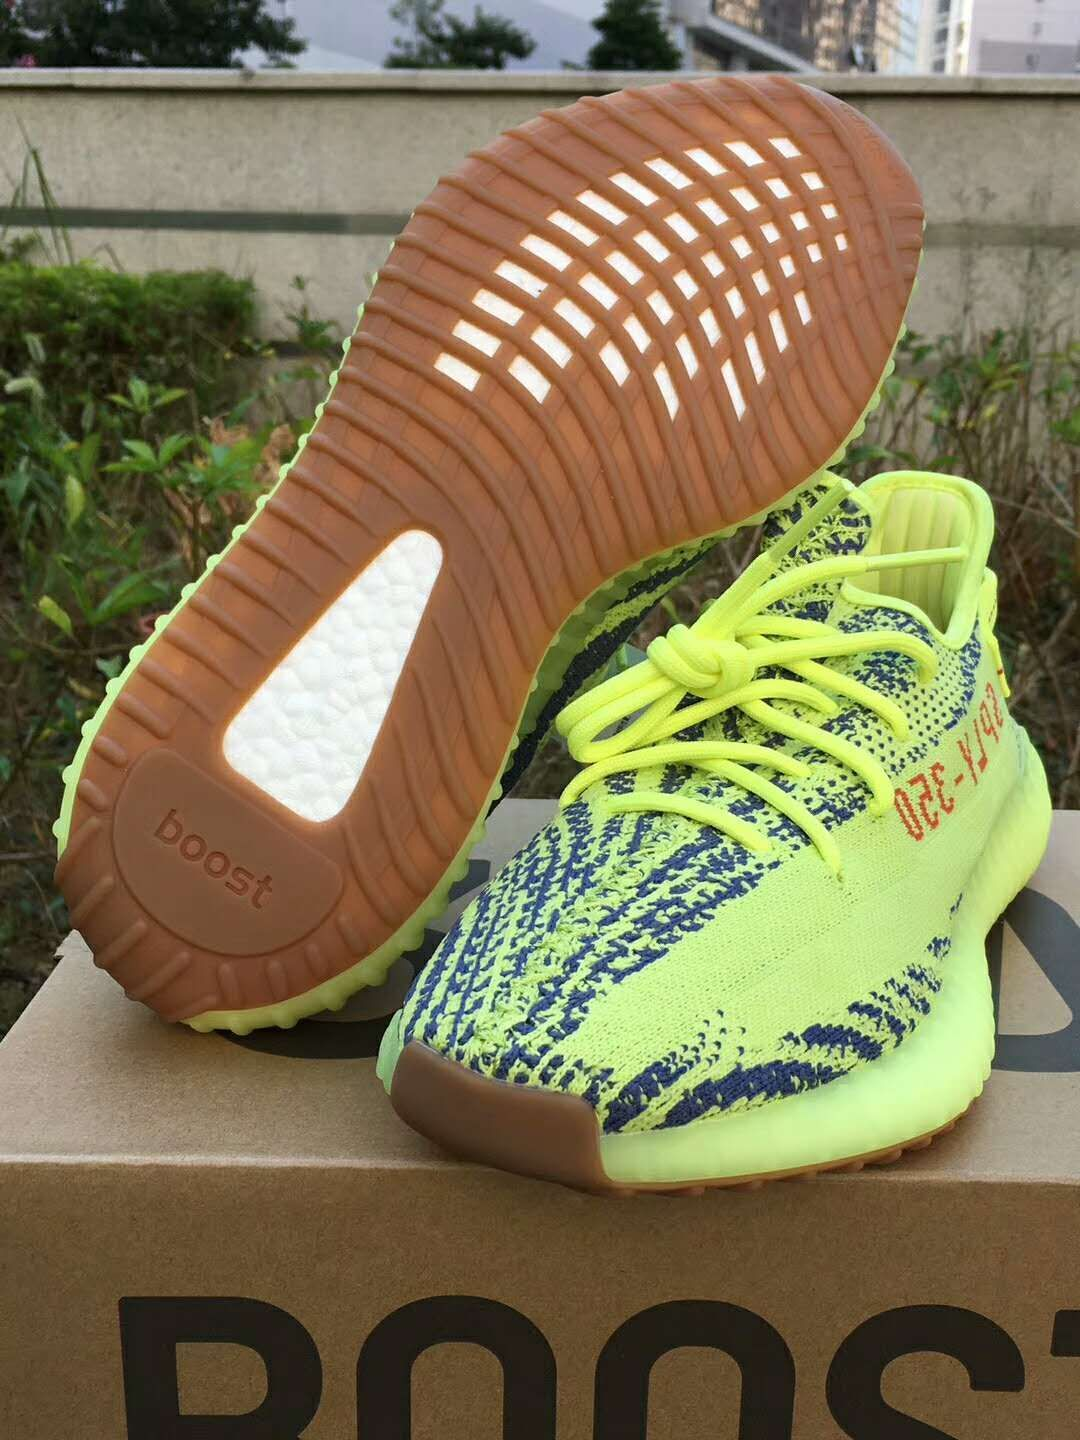 sports shoes 9c573 6ac40 Adidas Yeezy Boost 350 V2 Yebra Semi Frozen Yellow B37572